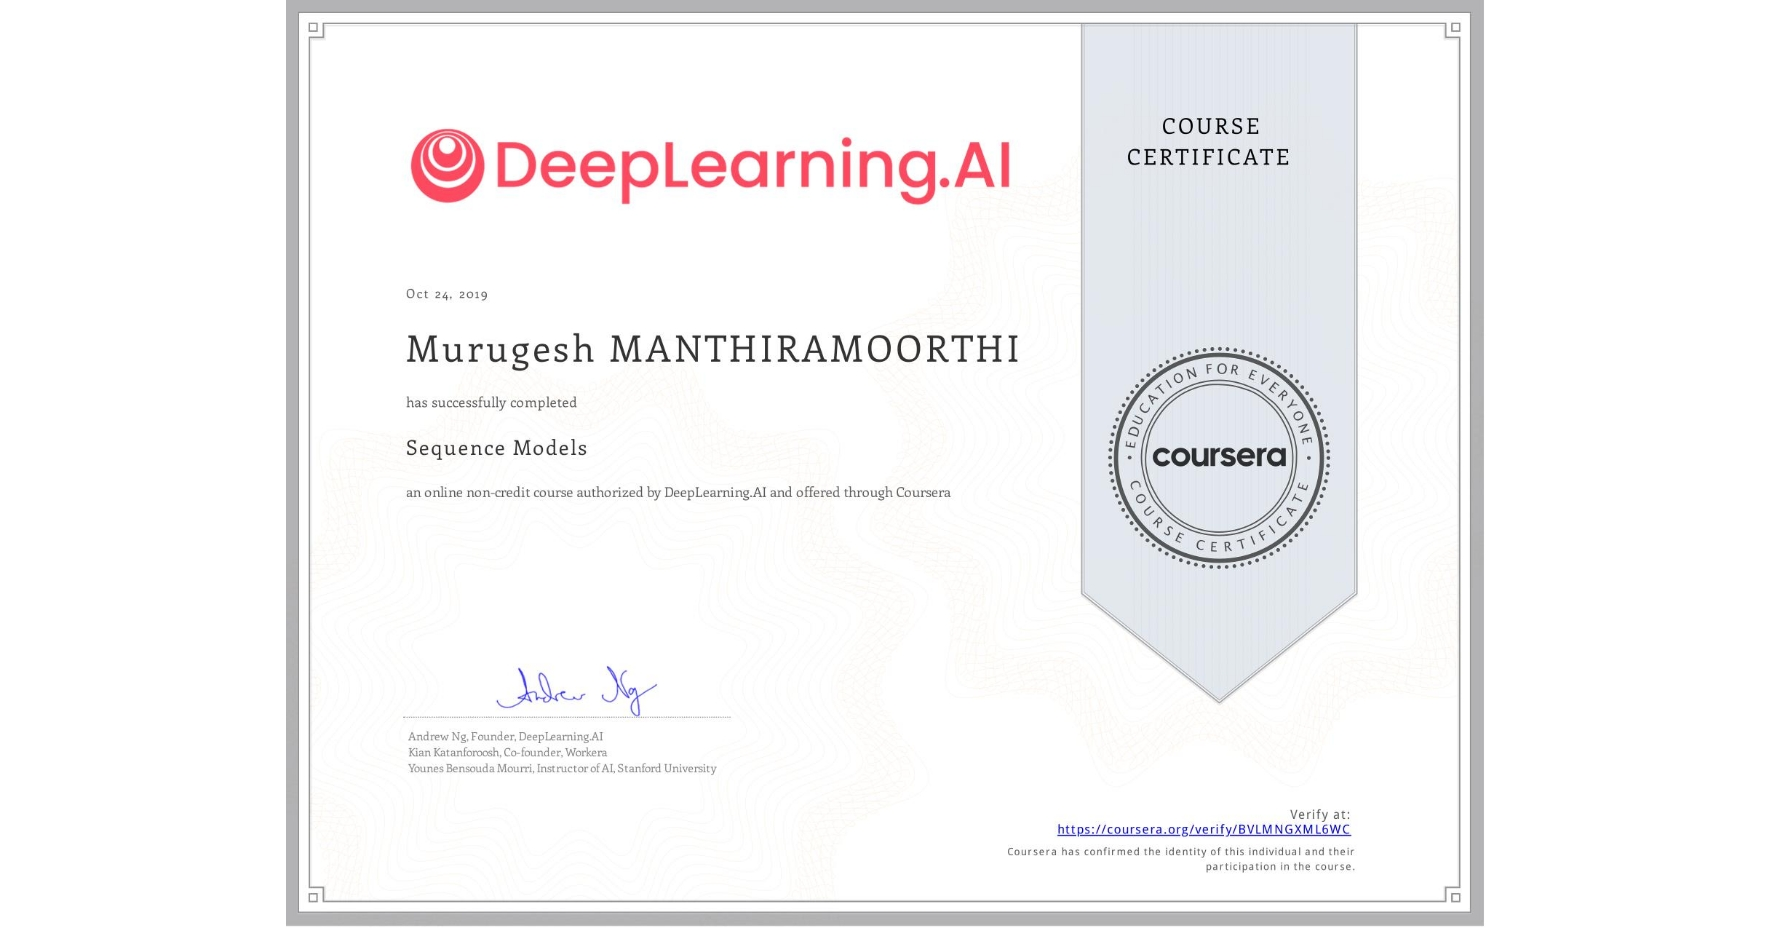 View certificate for Murugesh Manthiramoorthi, Sequence Models, an online non-credit course authorized by DeepLearning.AI and offered through Coursera